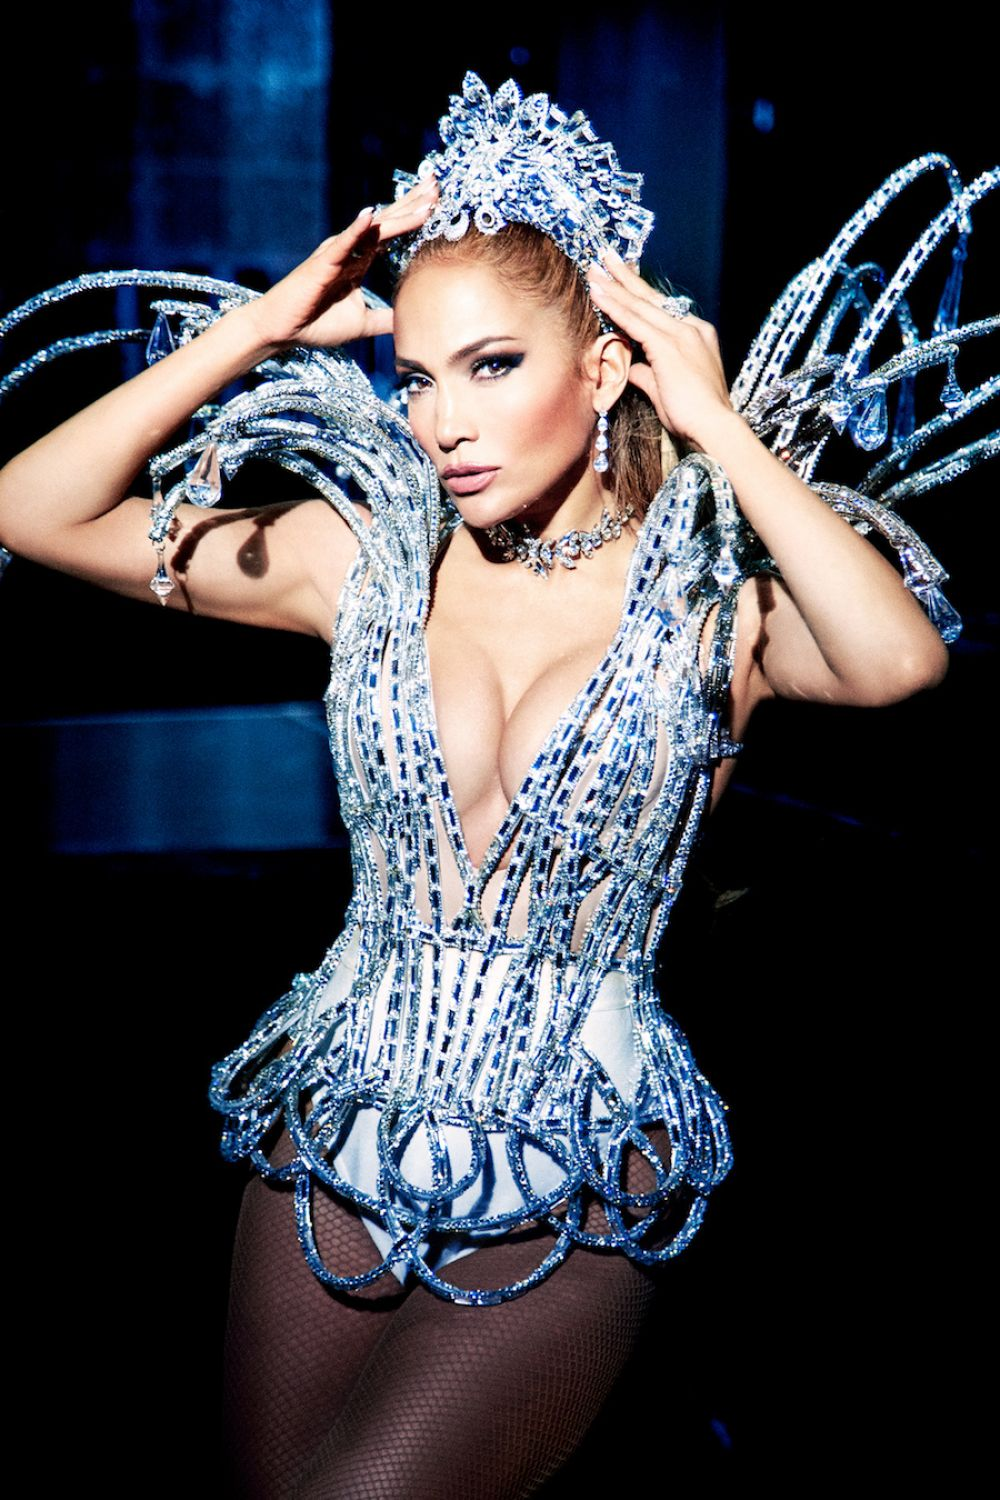 Jennifer Lopez At James White Photoshoot for Paper Magazine, 2017